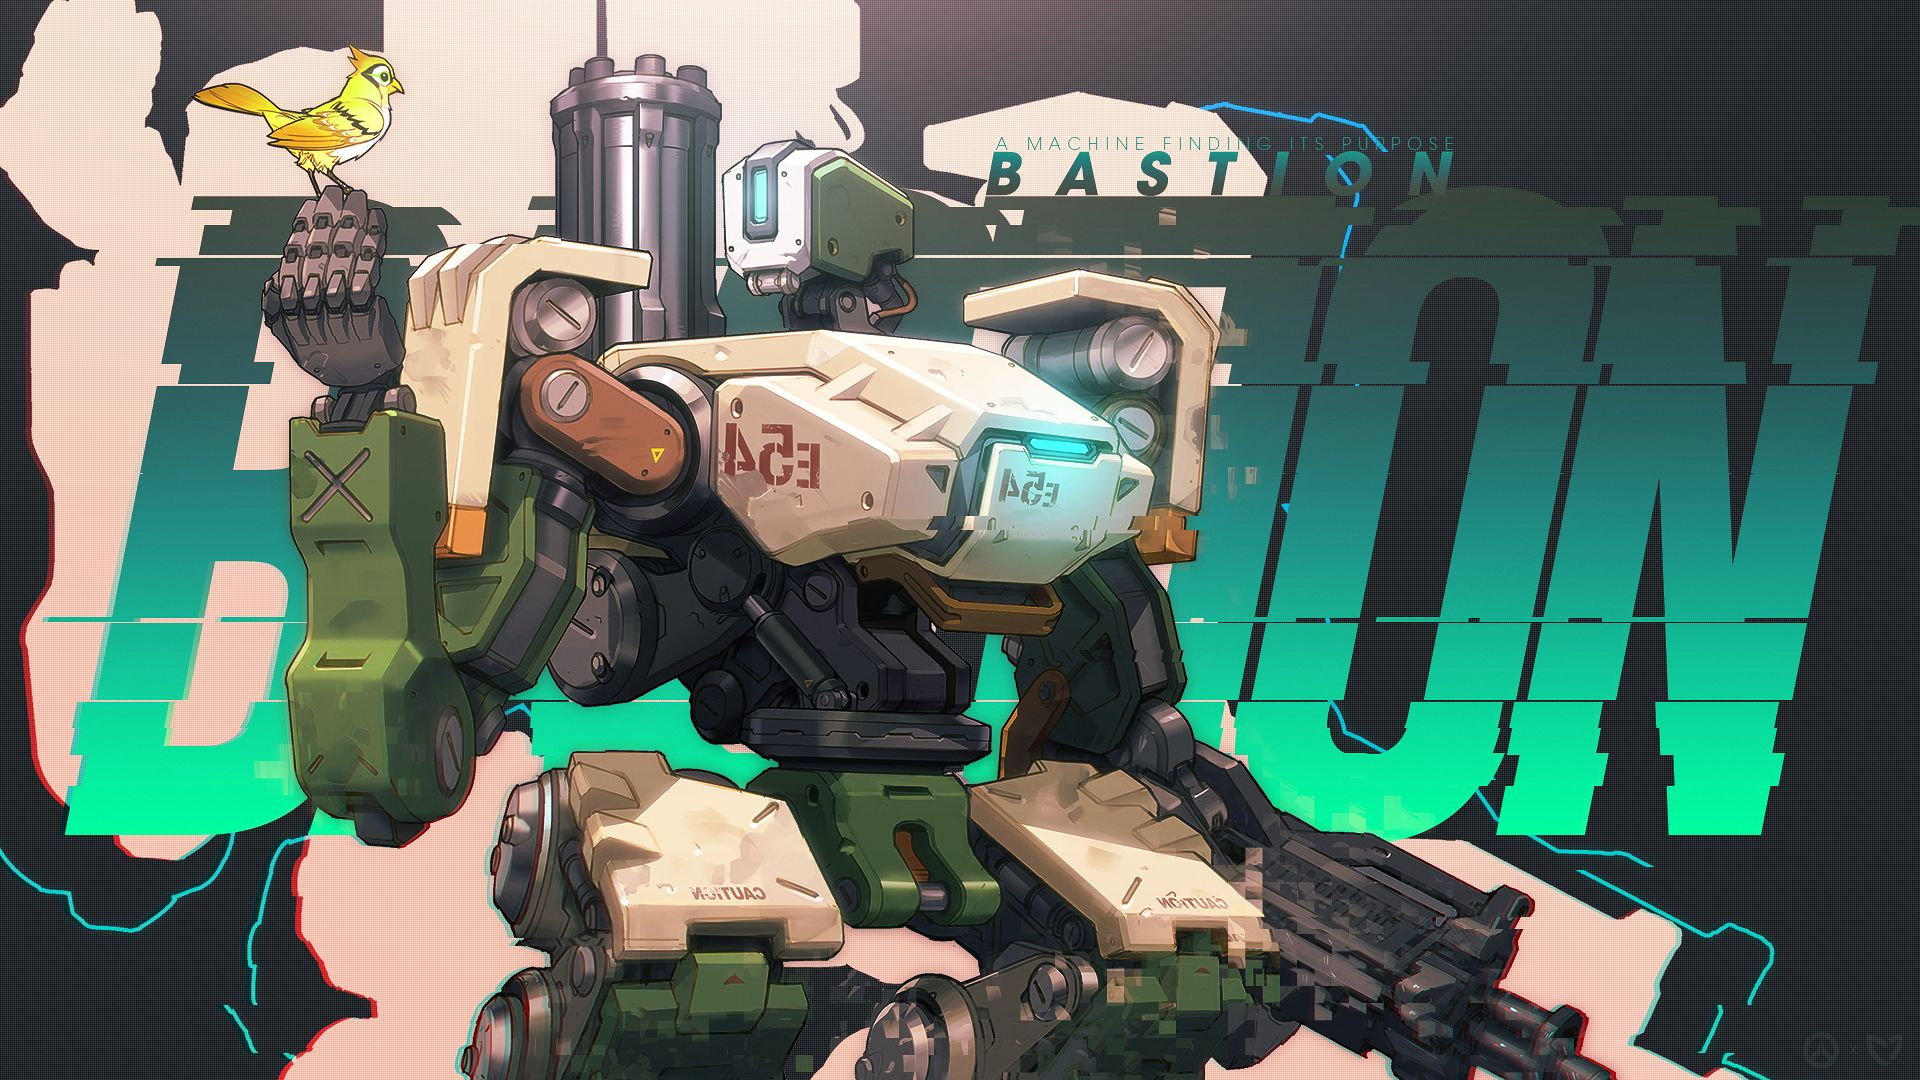 Overwatch : Bastion Backgrounds